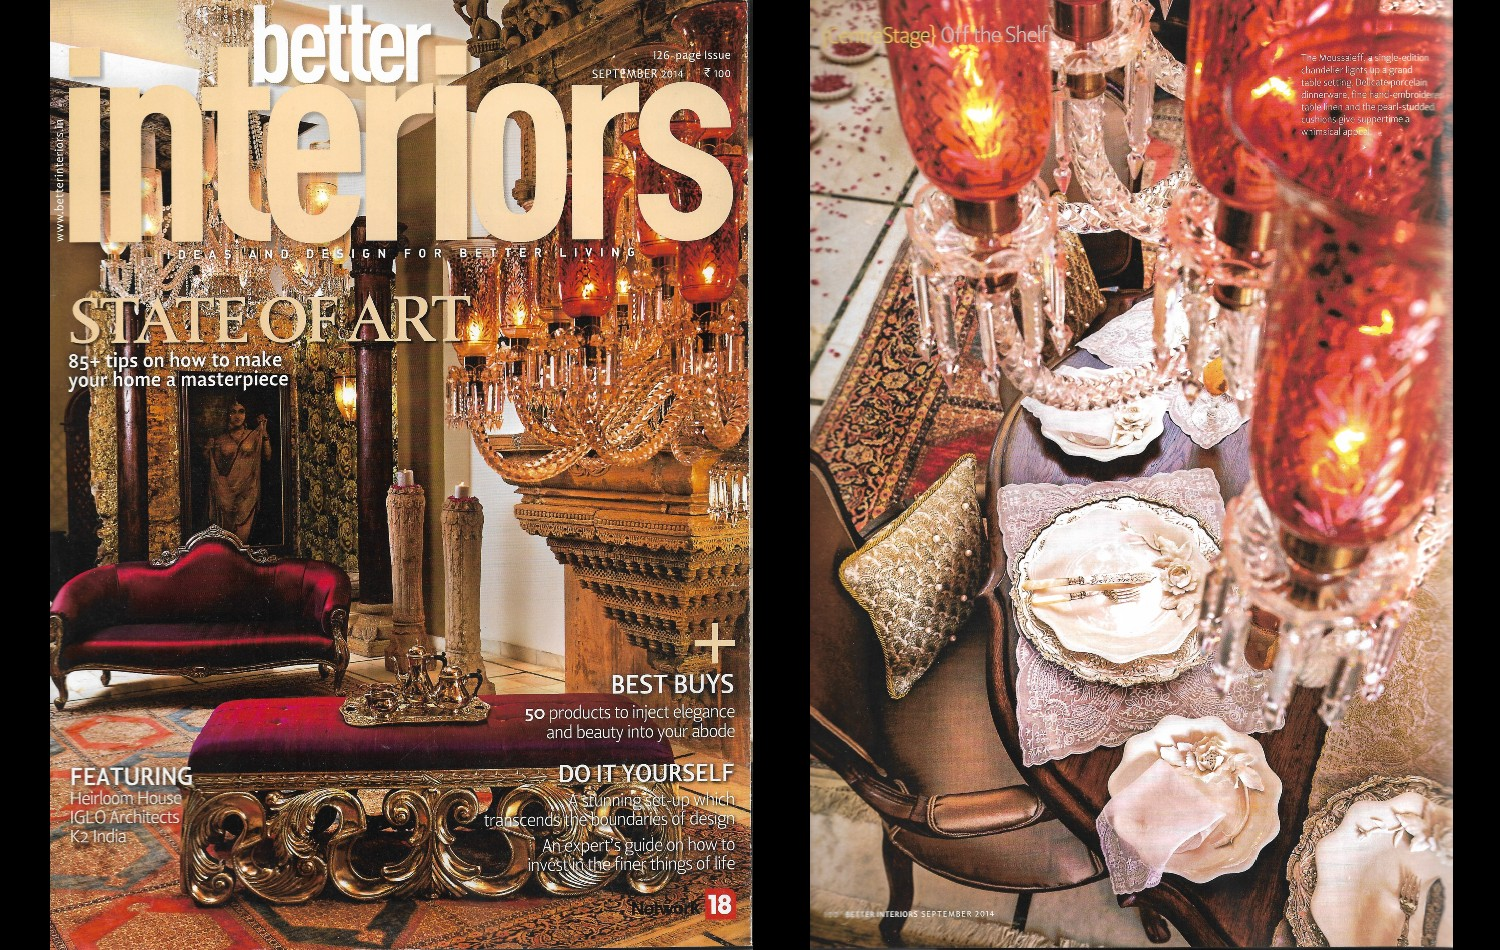 20140900 Better Interiors Sep2014 - TN - HIGH